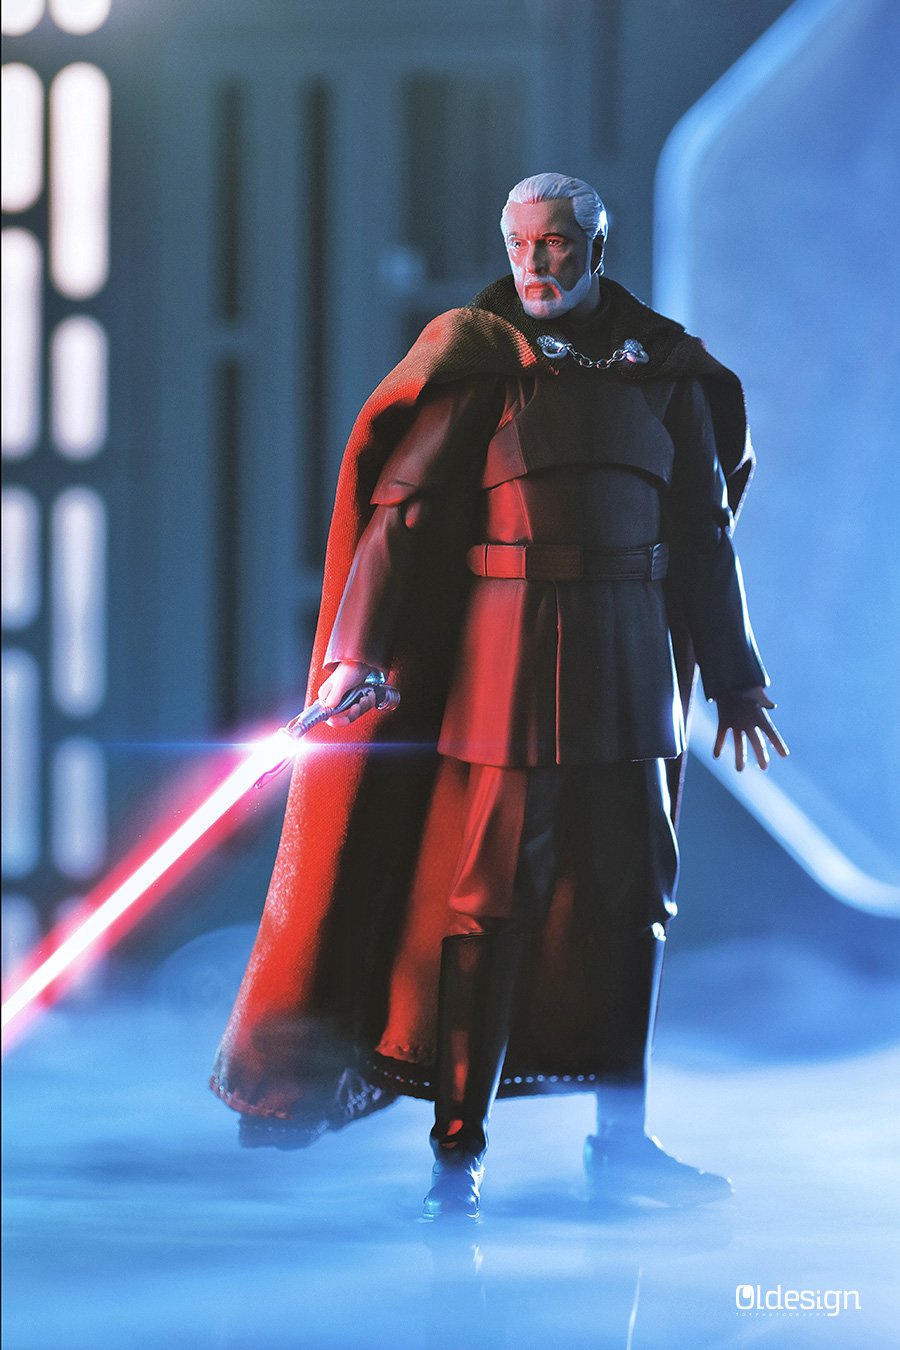 9_dooku_oldesign